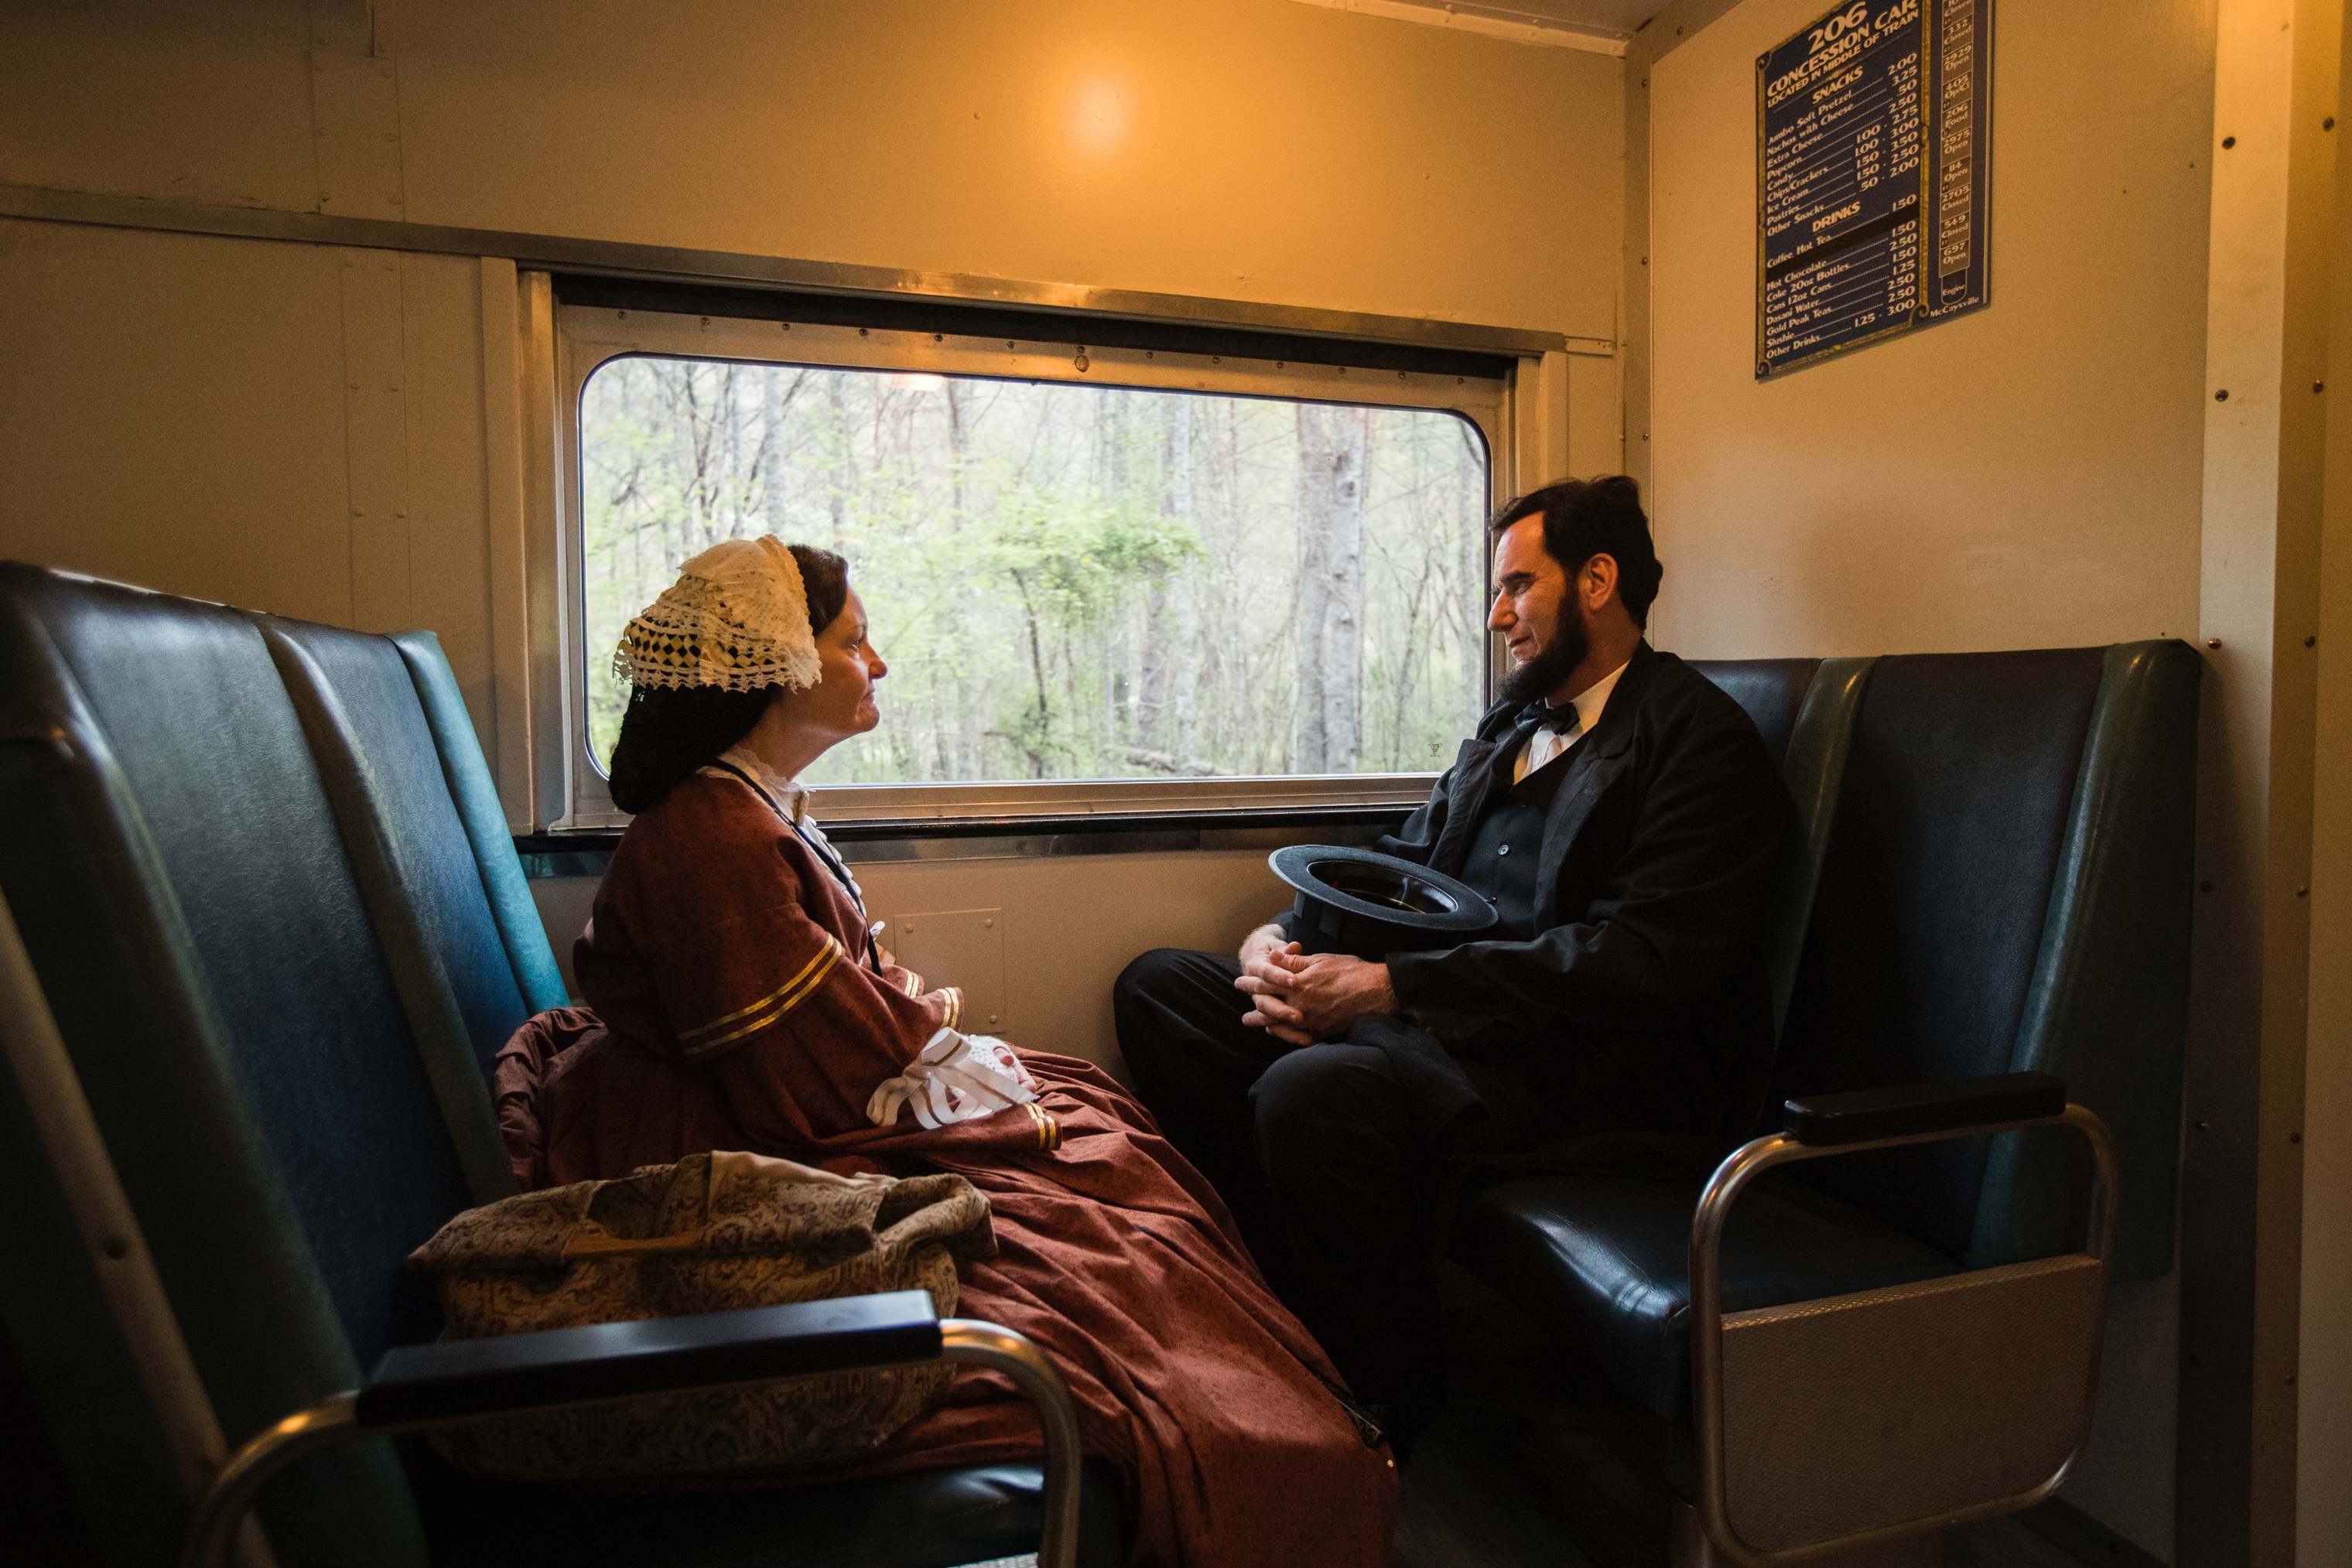 Members of the Lincoln Presenters conference take the scenic and historic train from Blue Ridge to McCaysville on April 12. Here, Teena Baldrige, 67, of Springboro, Ohio, chats with James Mitchell, 54, from Hope, Kan.